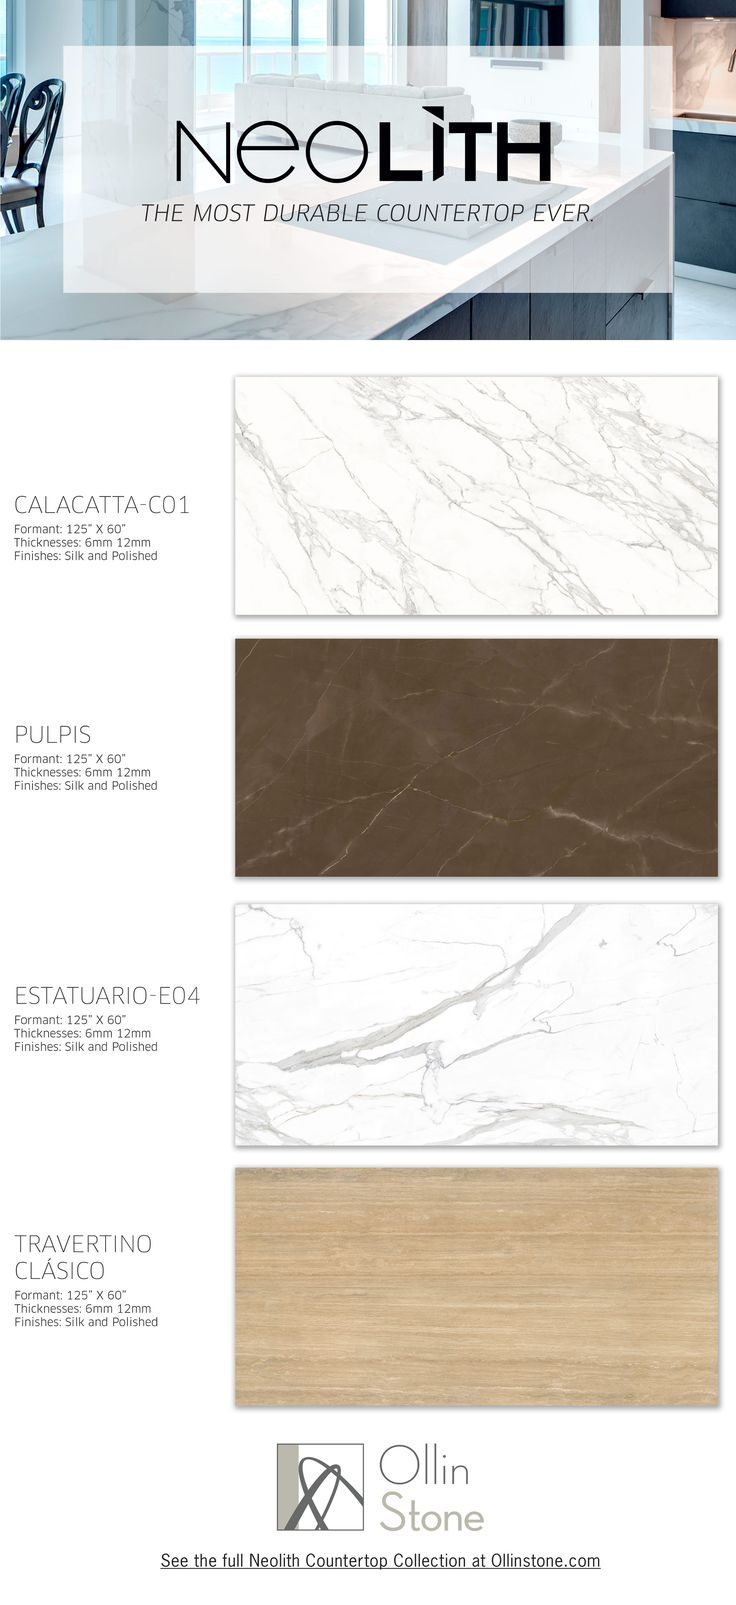 Neolith Sintered Slabs Make For The Most Durable Yet